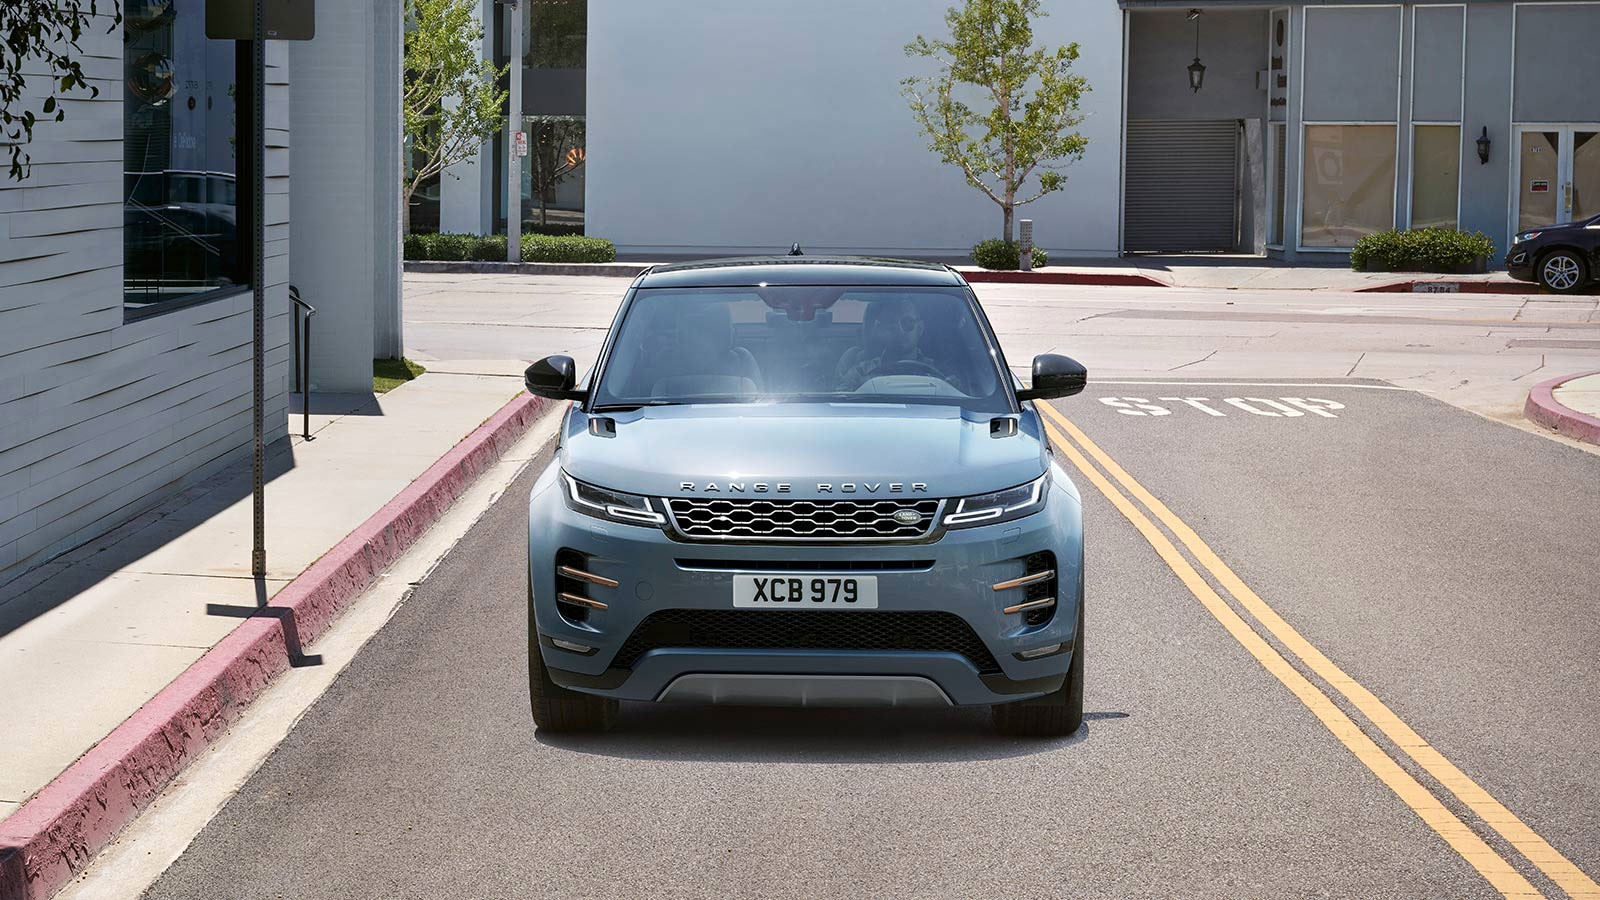 New Range Rover Evoque - Time to make a statement